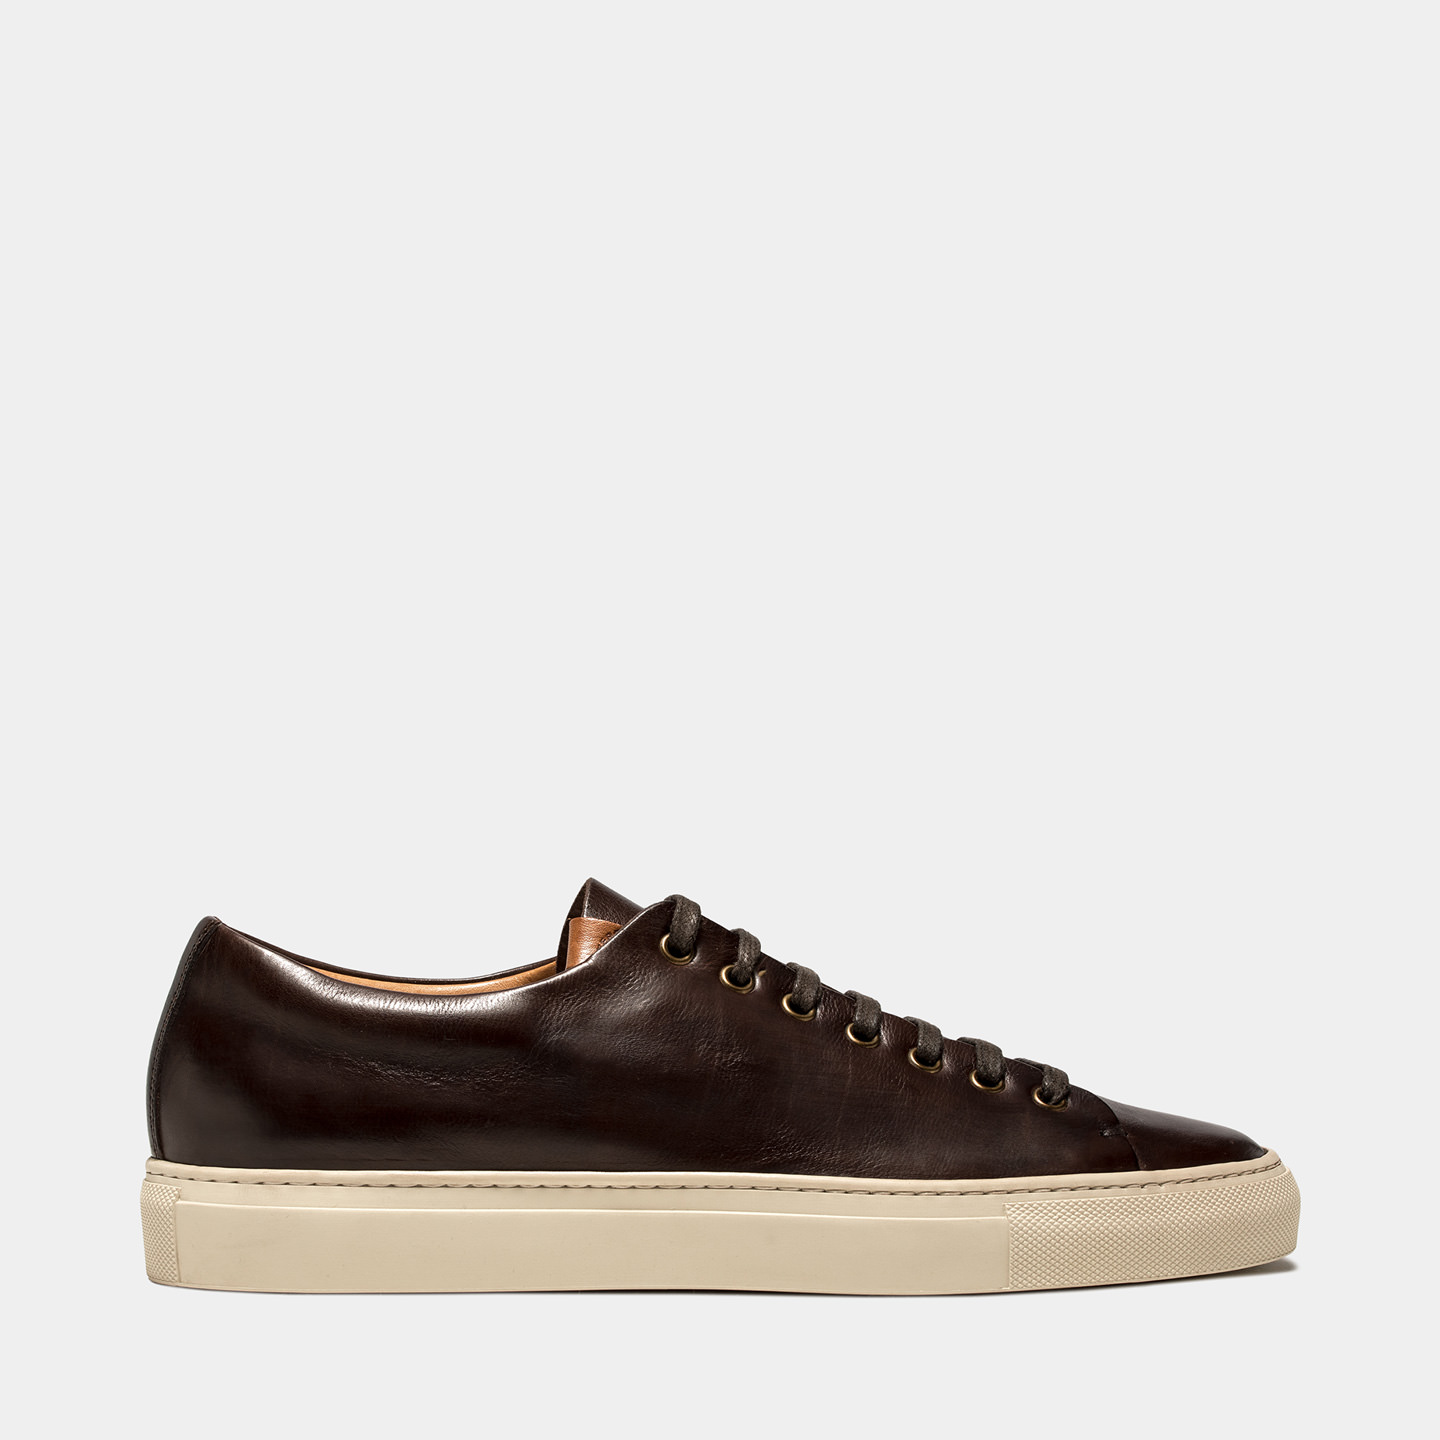 BUTTERO: DARK BROWN LEATHER TANINO LOW SNEAKERS